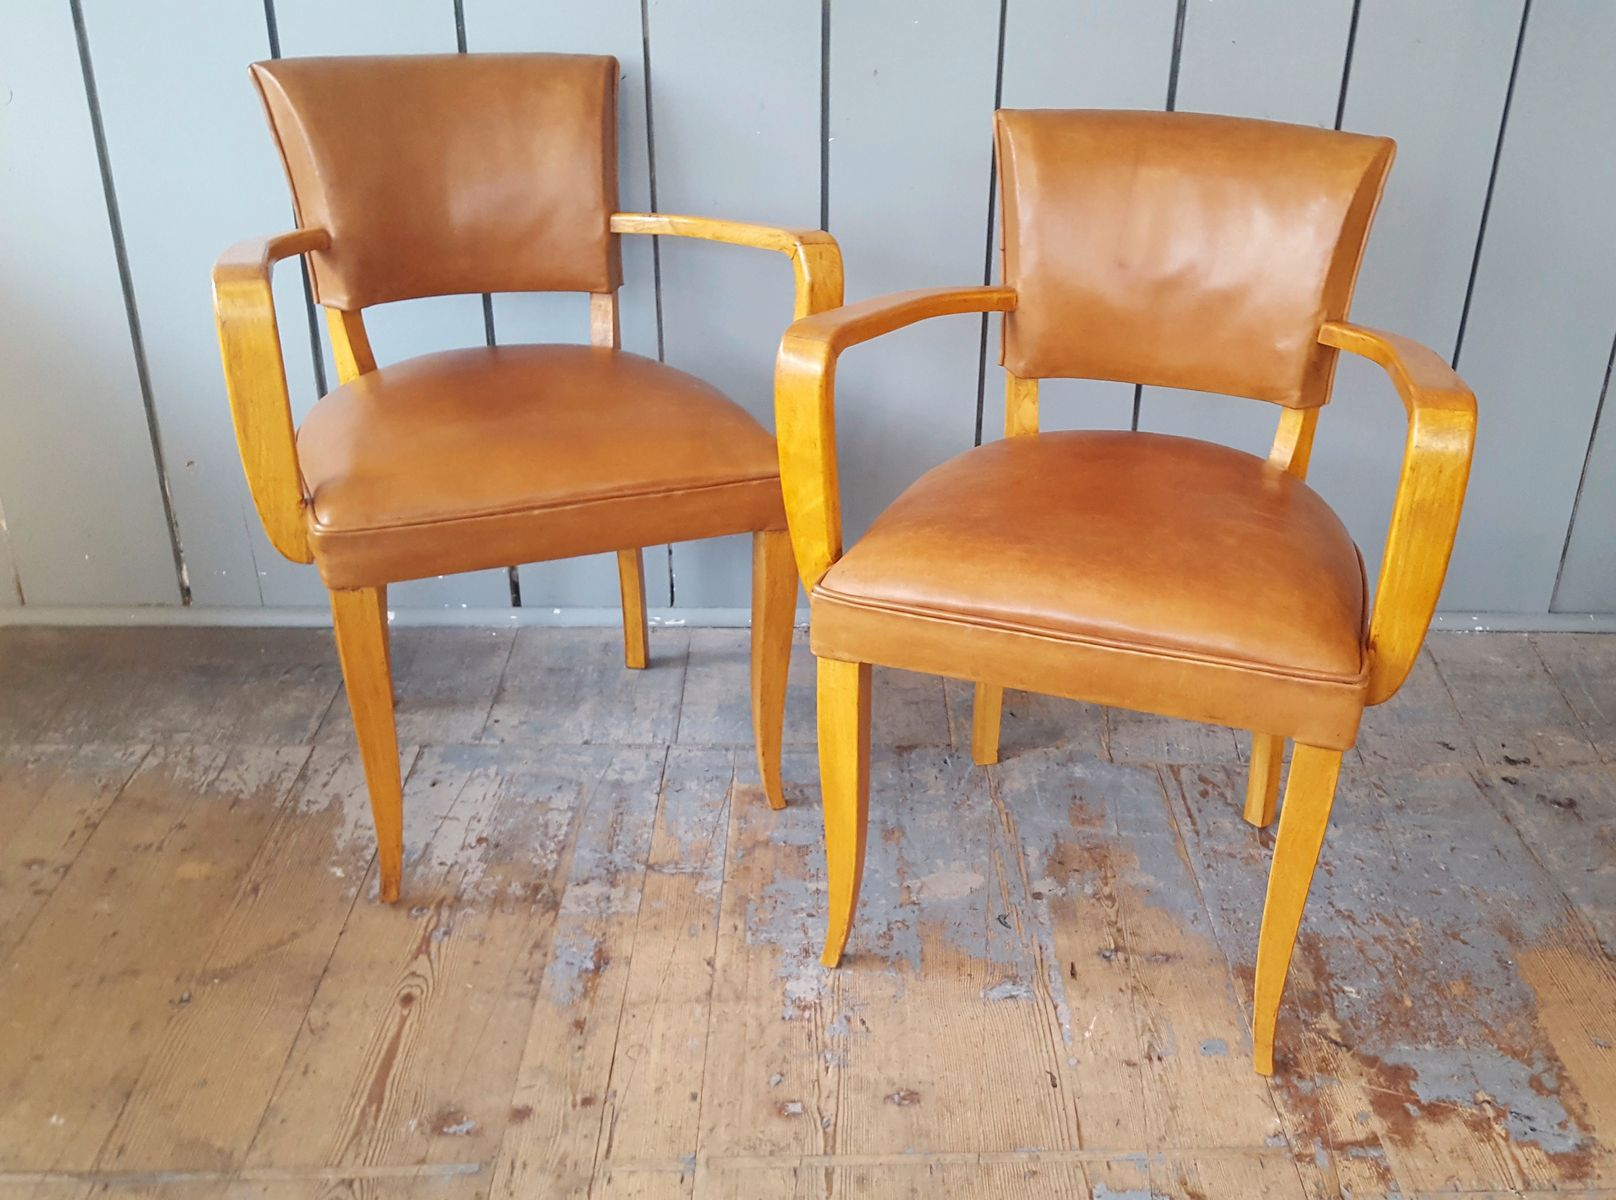 tan leather chair sale inflatable target vintage desk chairs set of 2 for at pamono